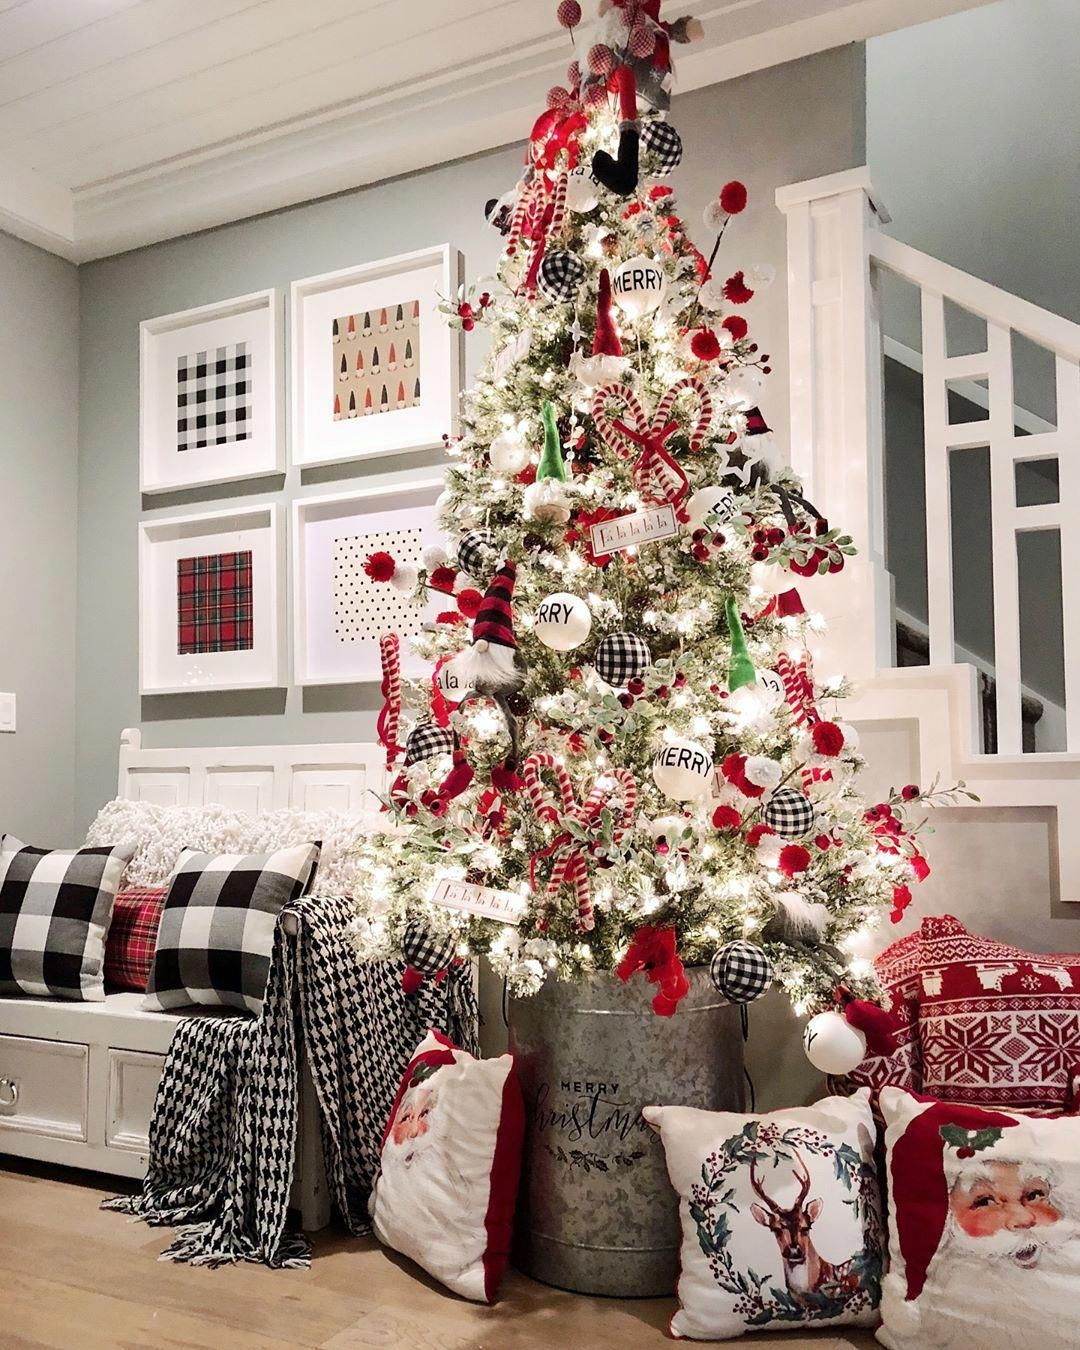 Christmas Home Hardware Christmas Decoration Ideas Nz Christmashomecomingdvd Christmas Home Christmas Decorations Christmas Diy